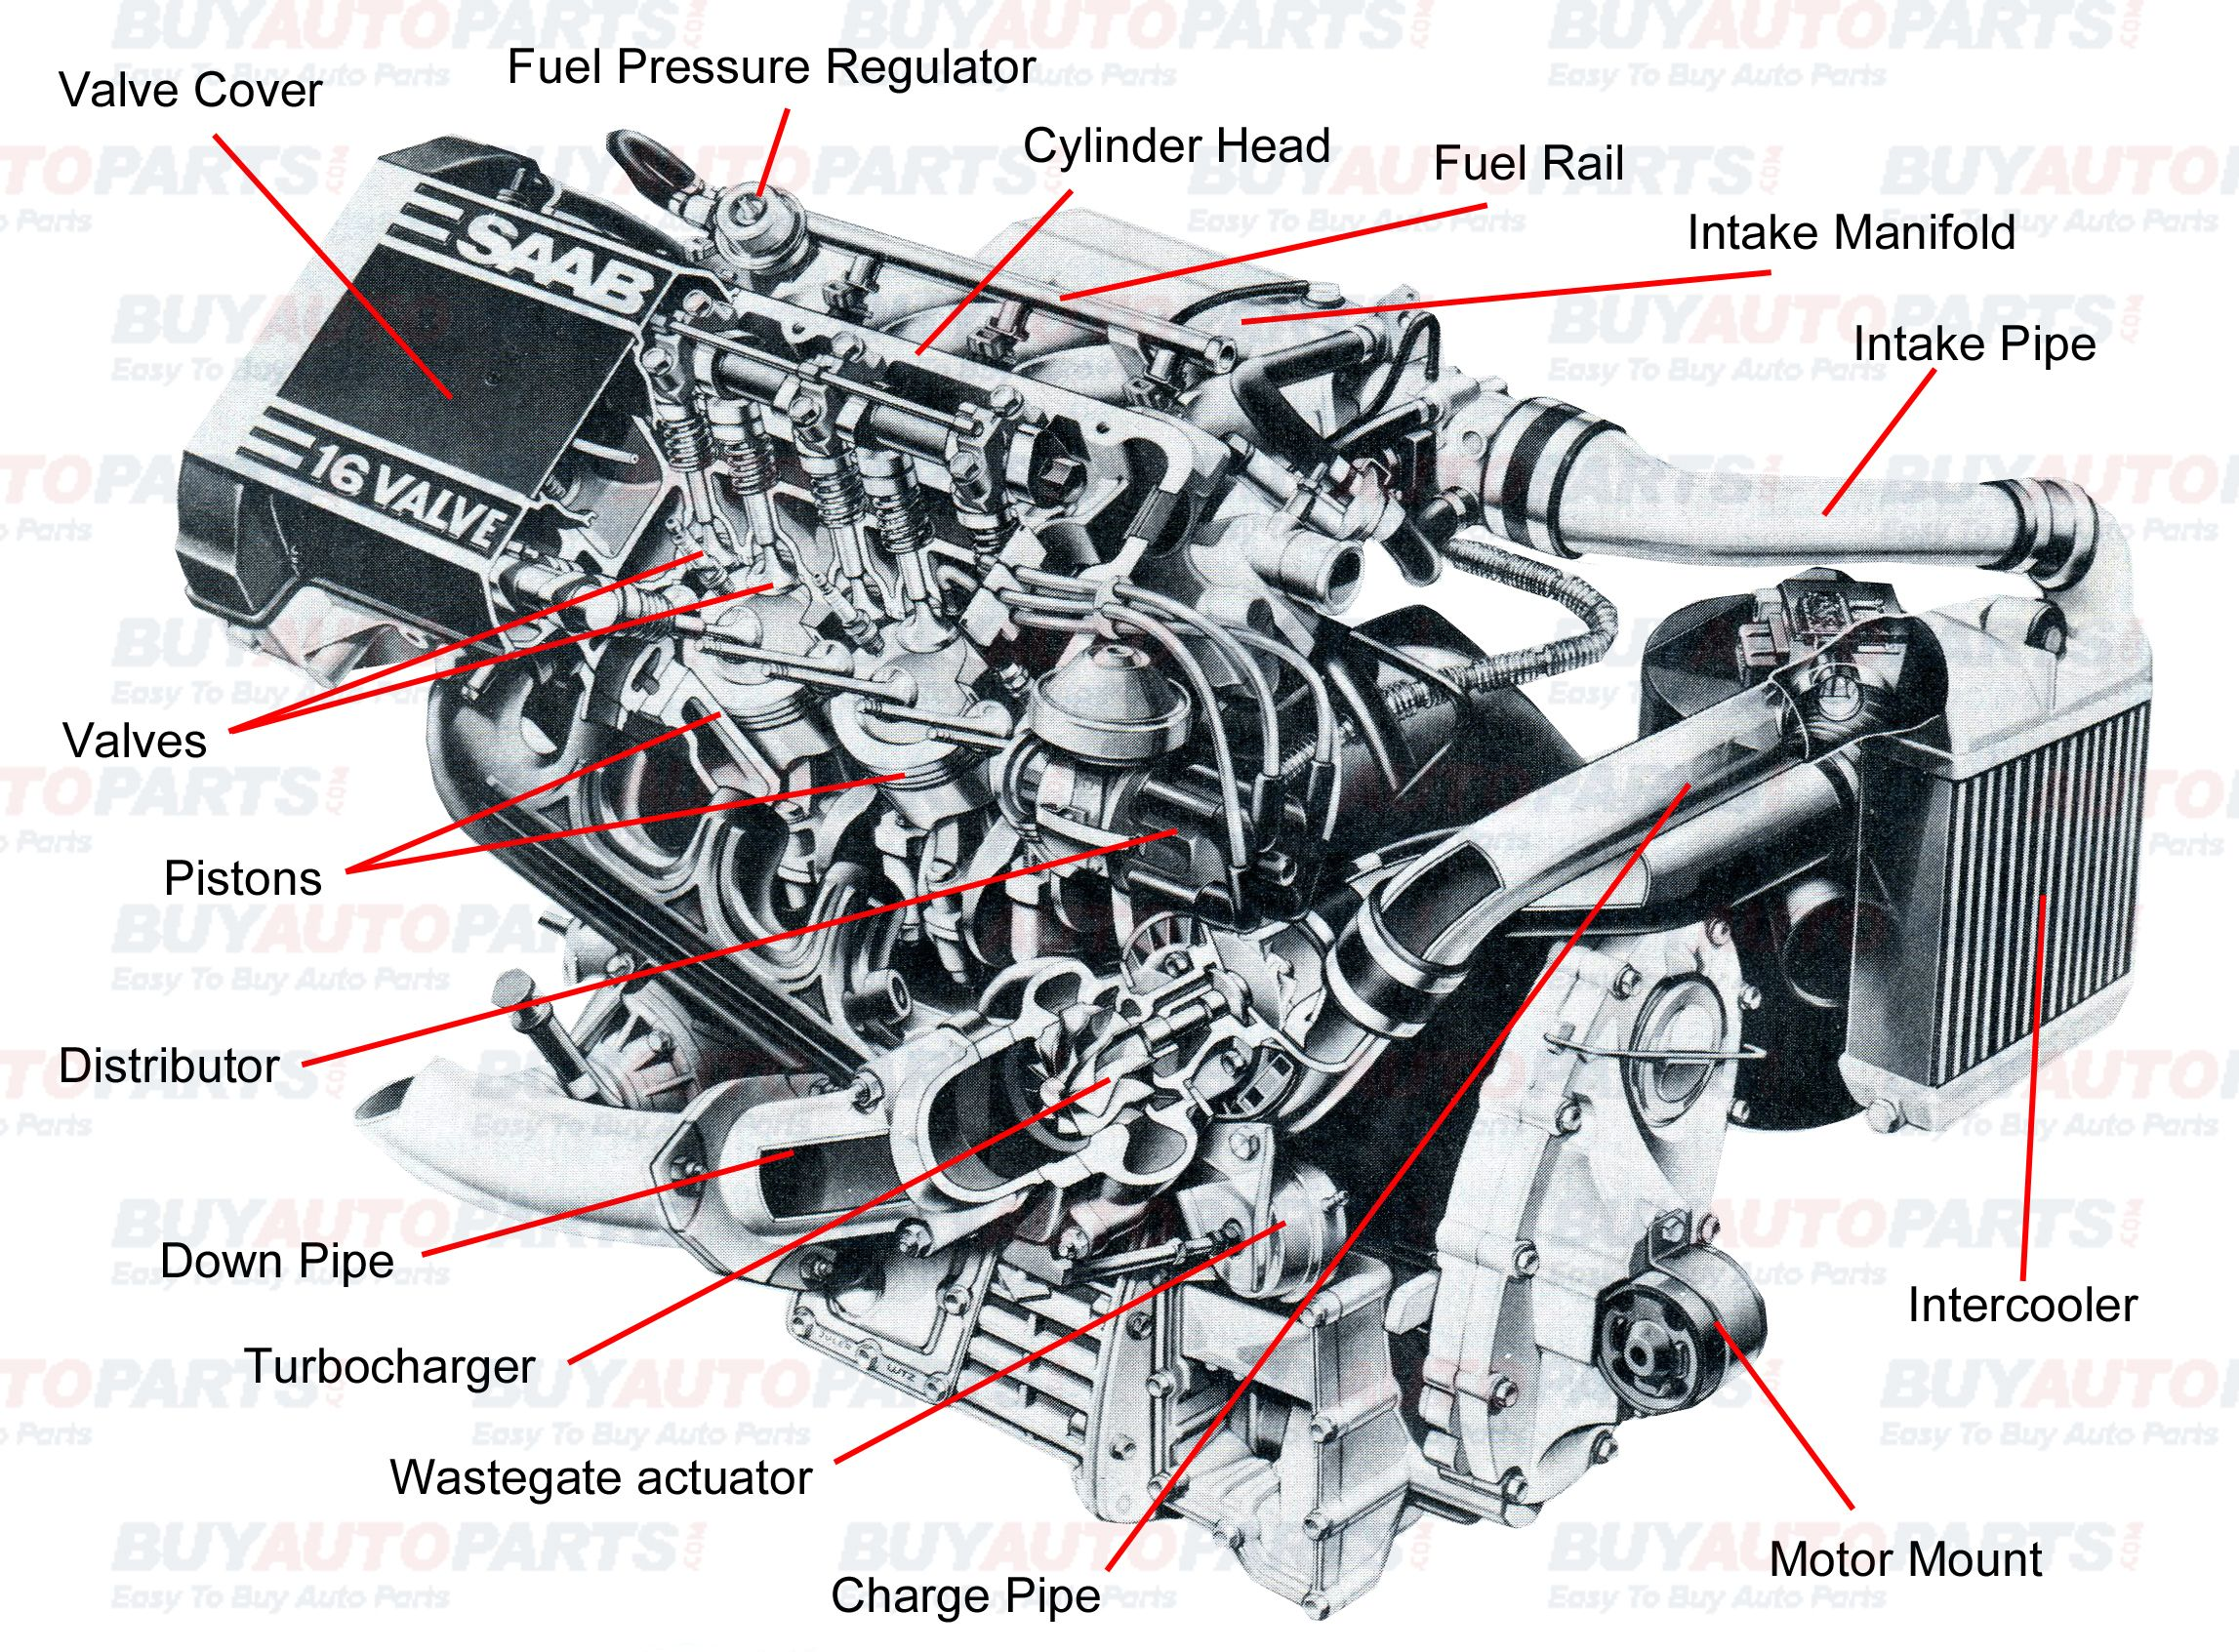 medium resolution of all internal combustion engines have the same basic components the it comes to the working of